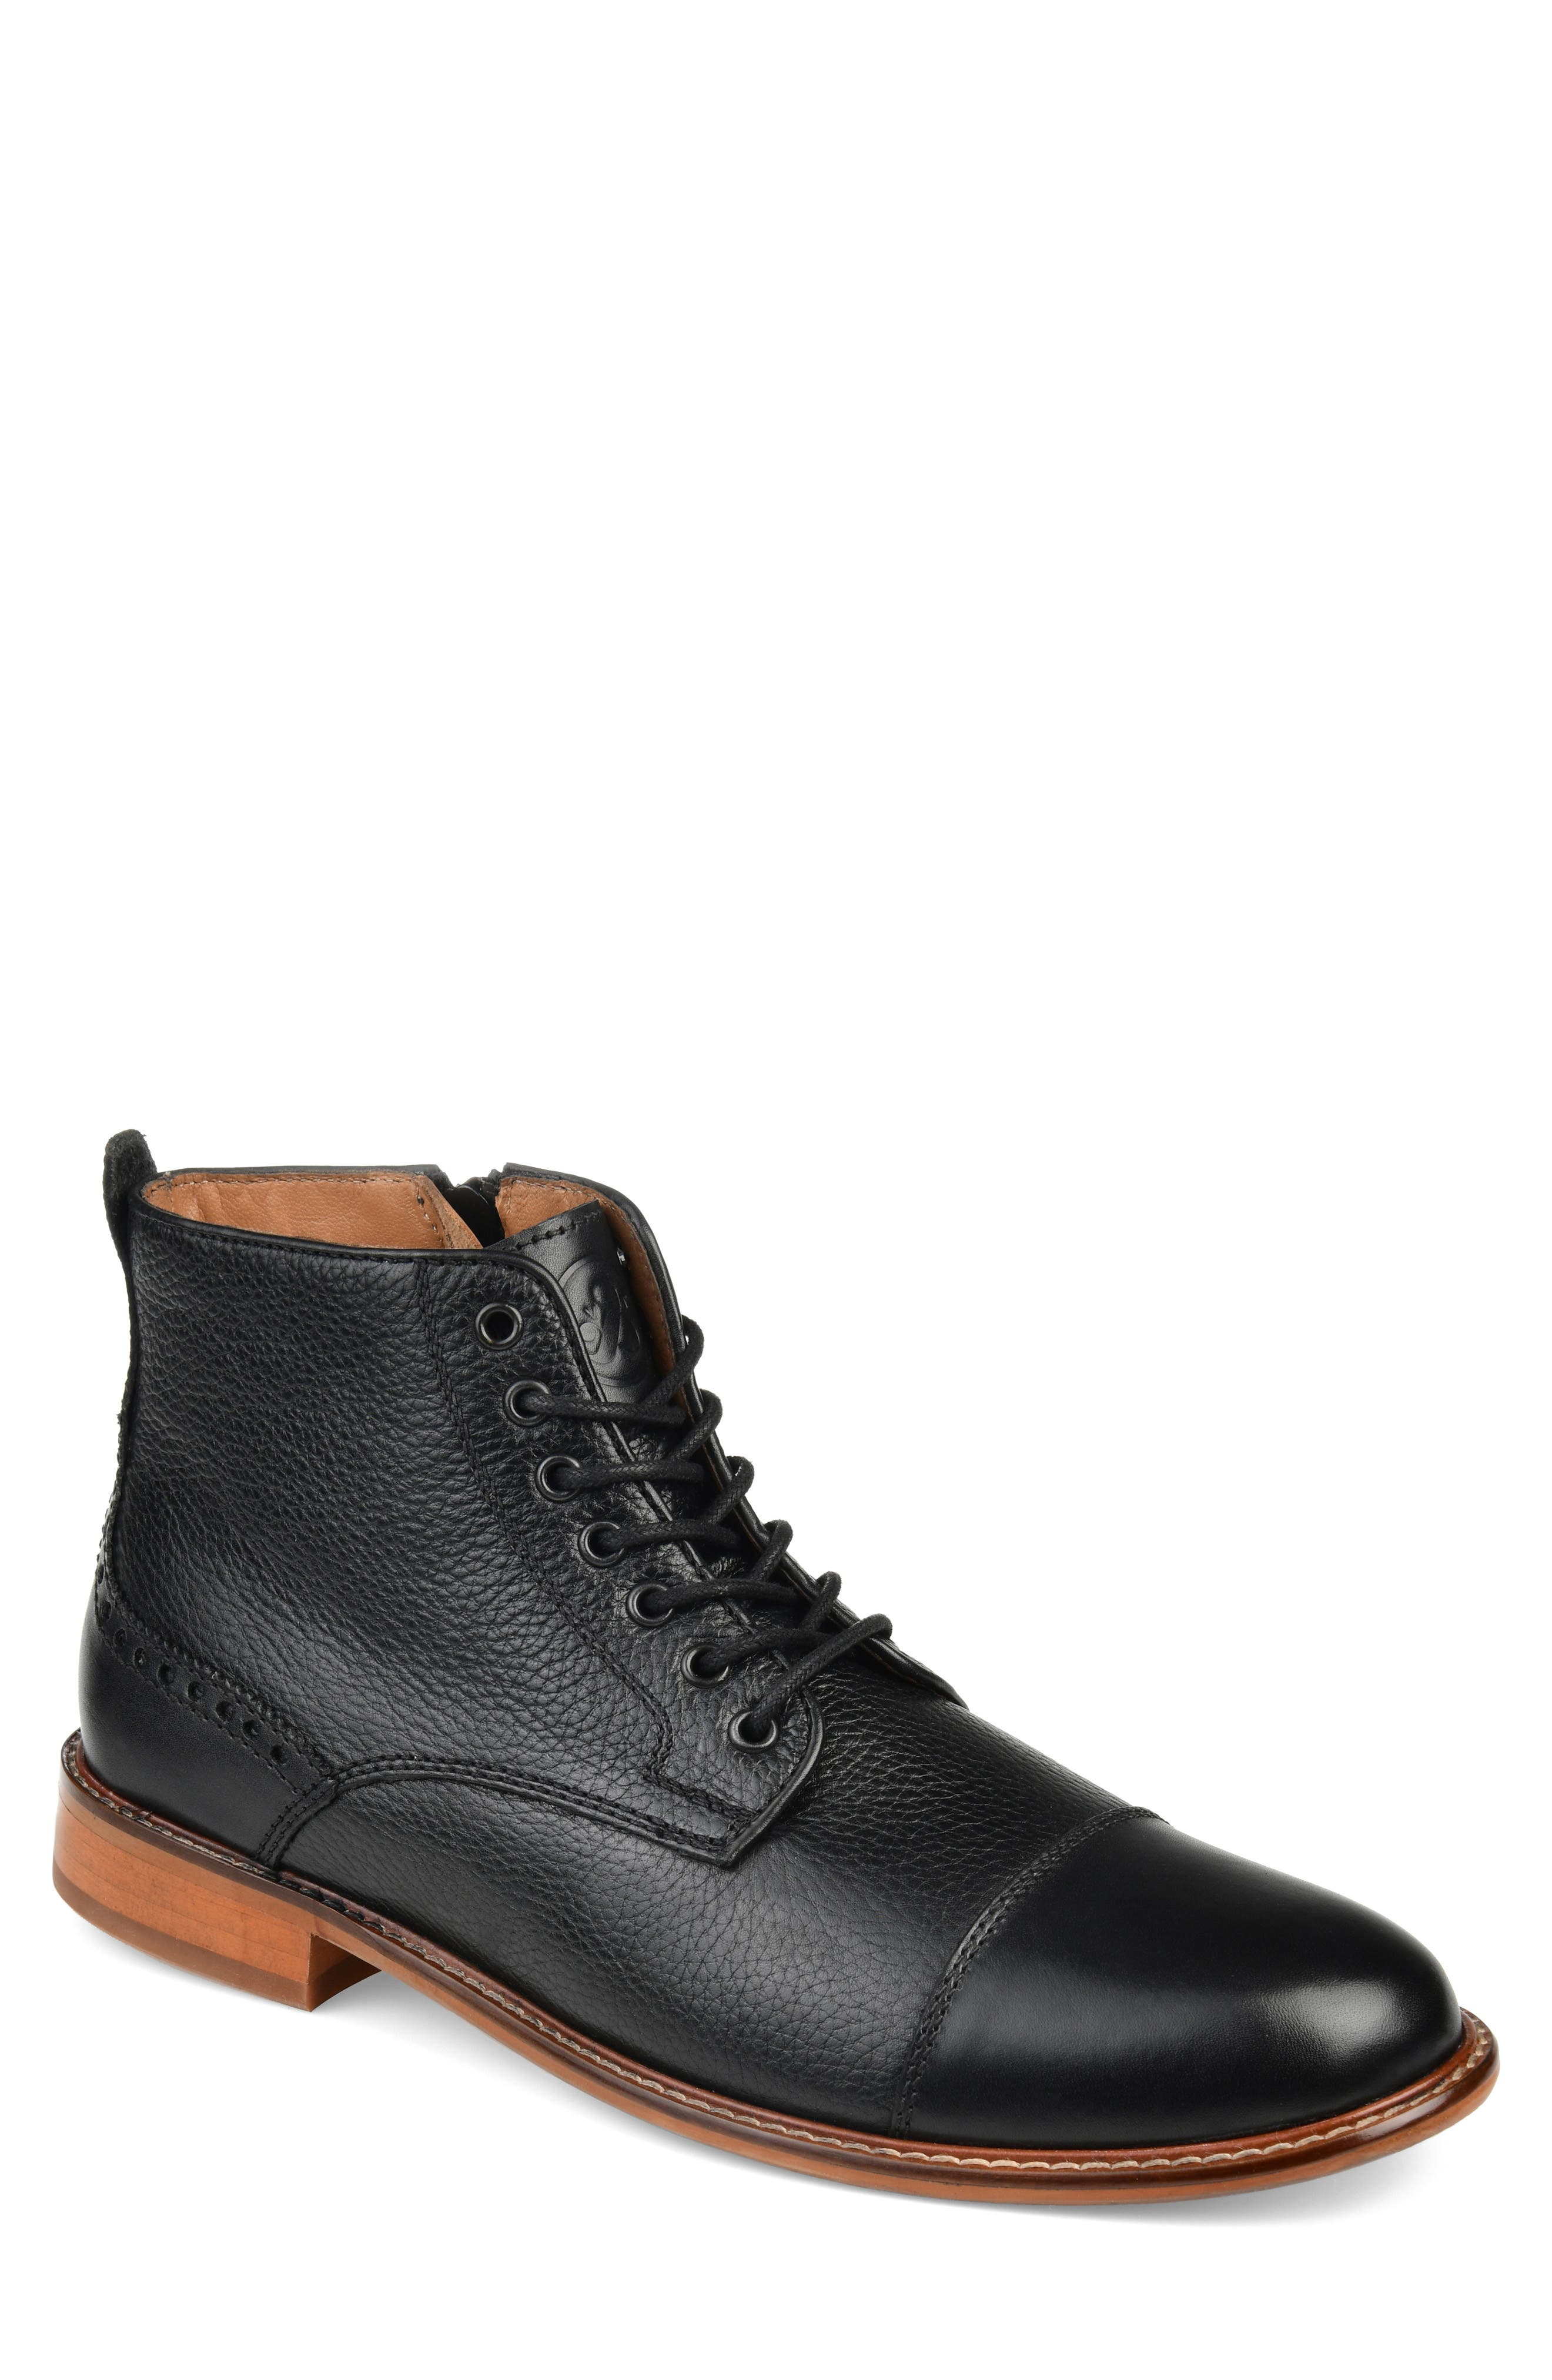 Brogue touches mark a stylish boot built from richly textured leather and featuring a padded footbed for comfort. Style Name: Thomas & Vine Malcom Cap Toe Boot (Men). Style Number: 5947143. Available in stores.